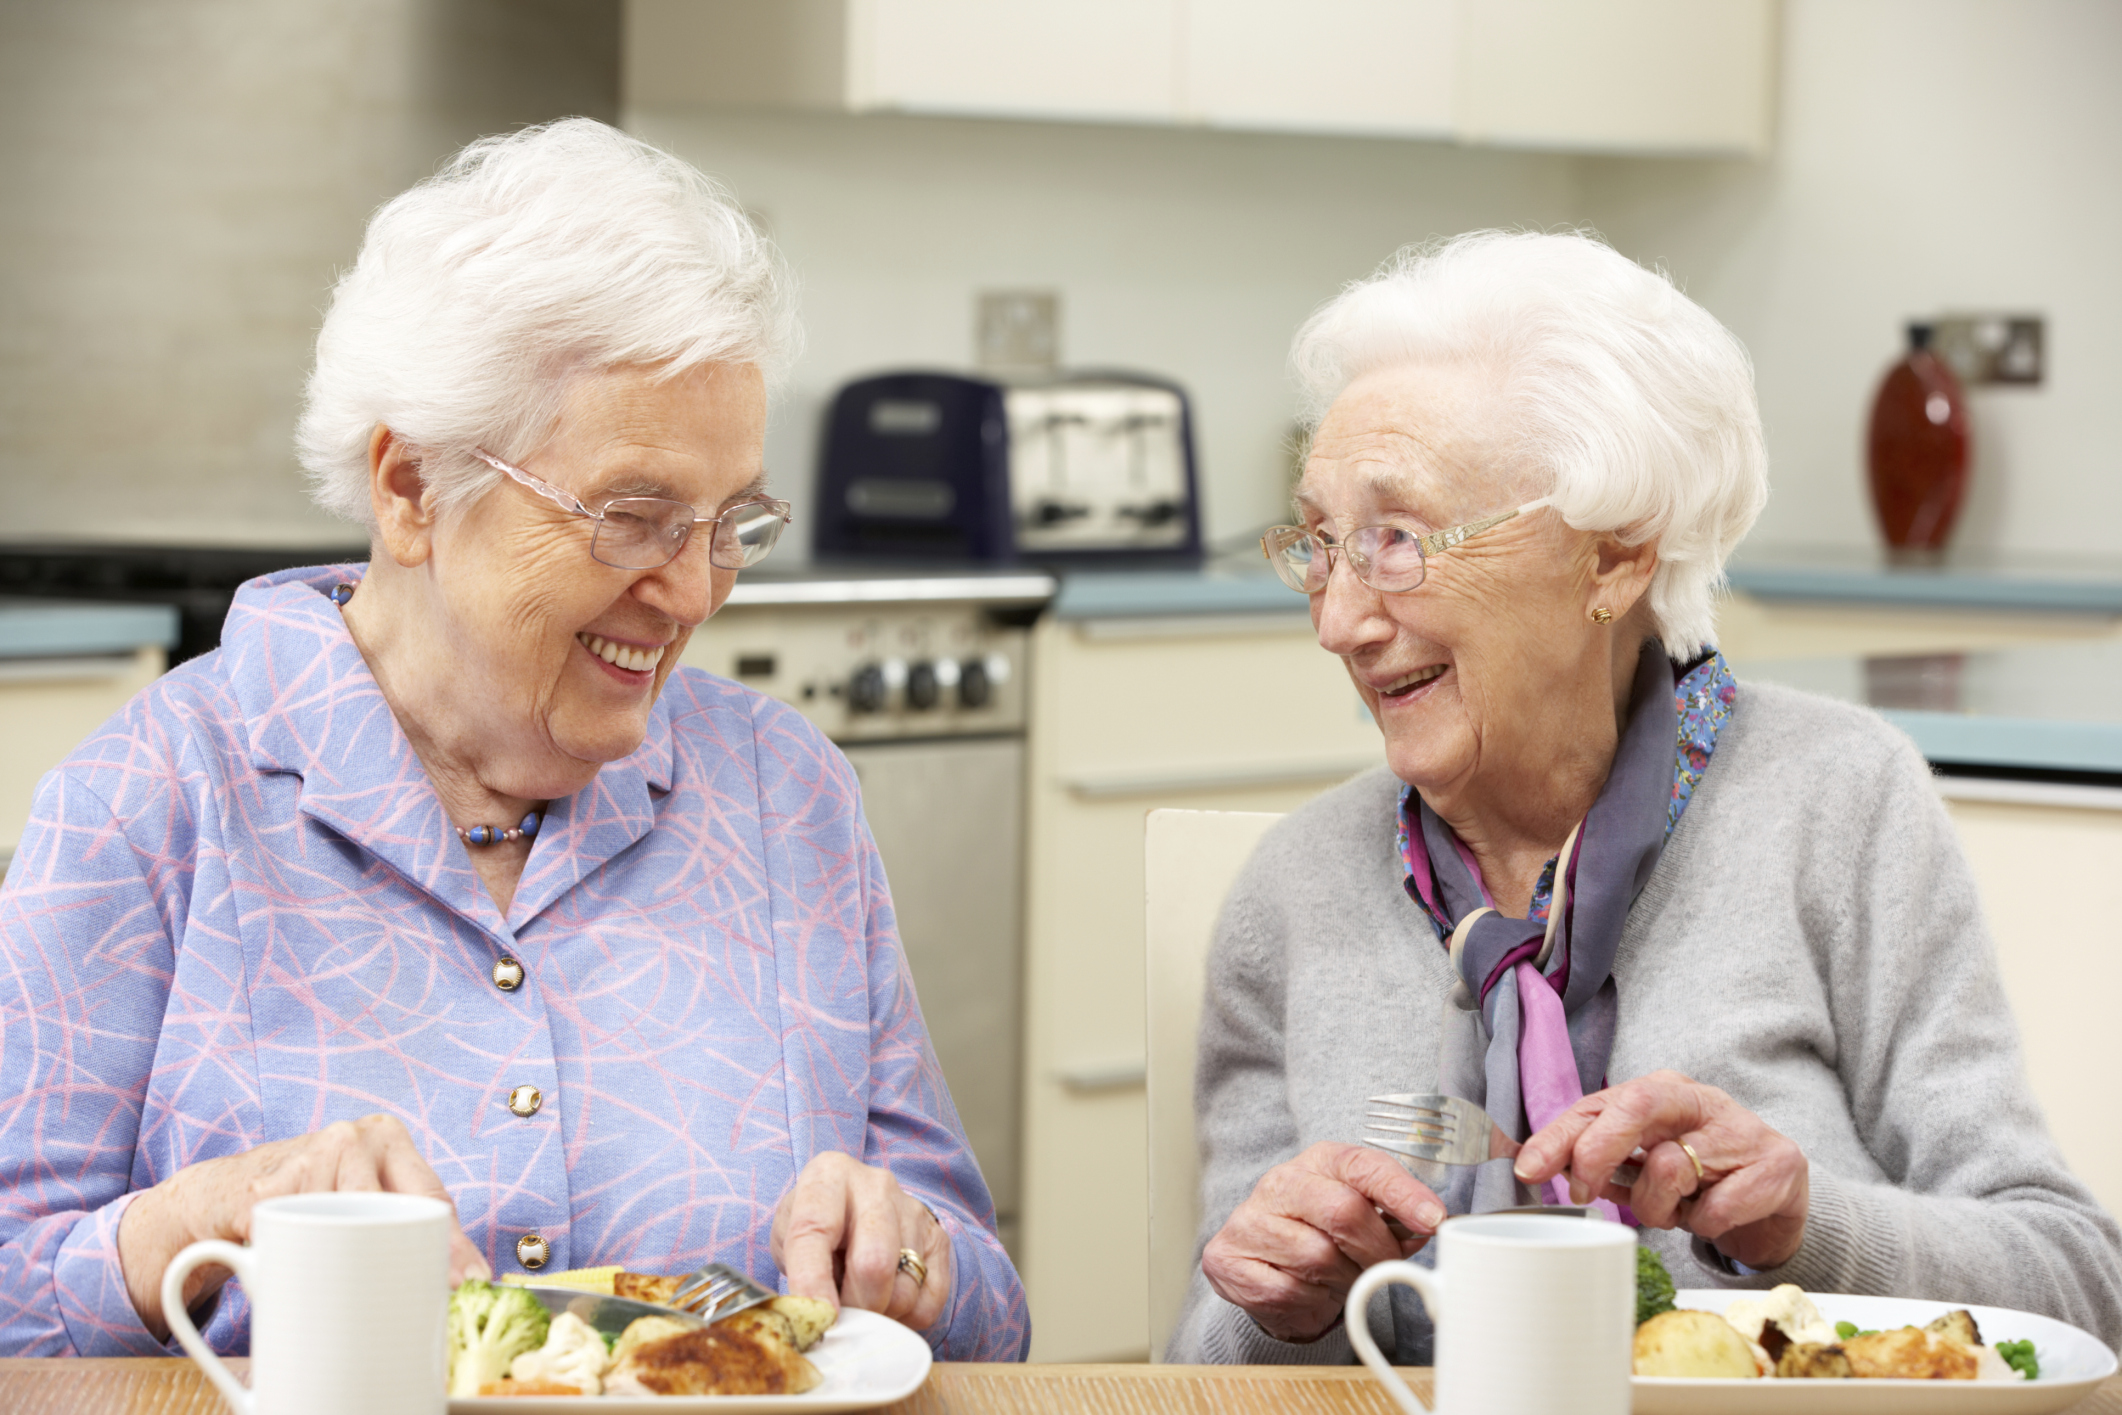 3 Ways to Help Seniors Stay Socially Connected